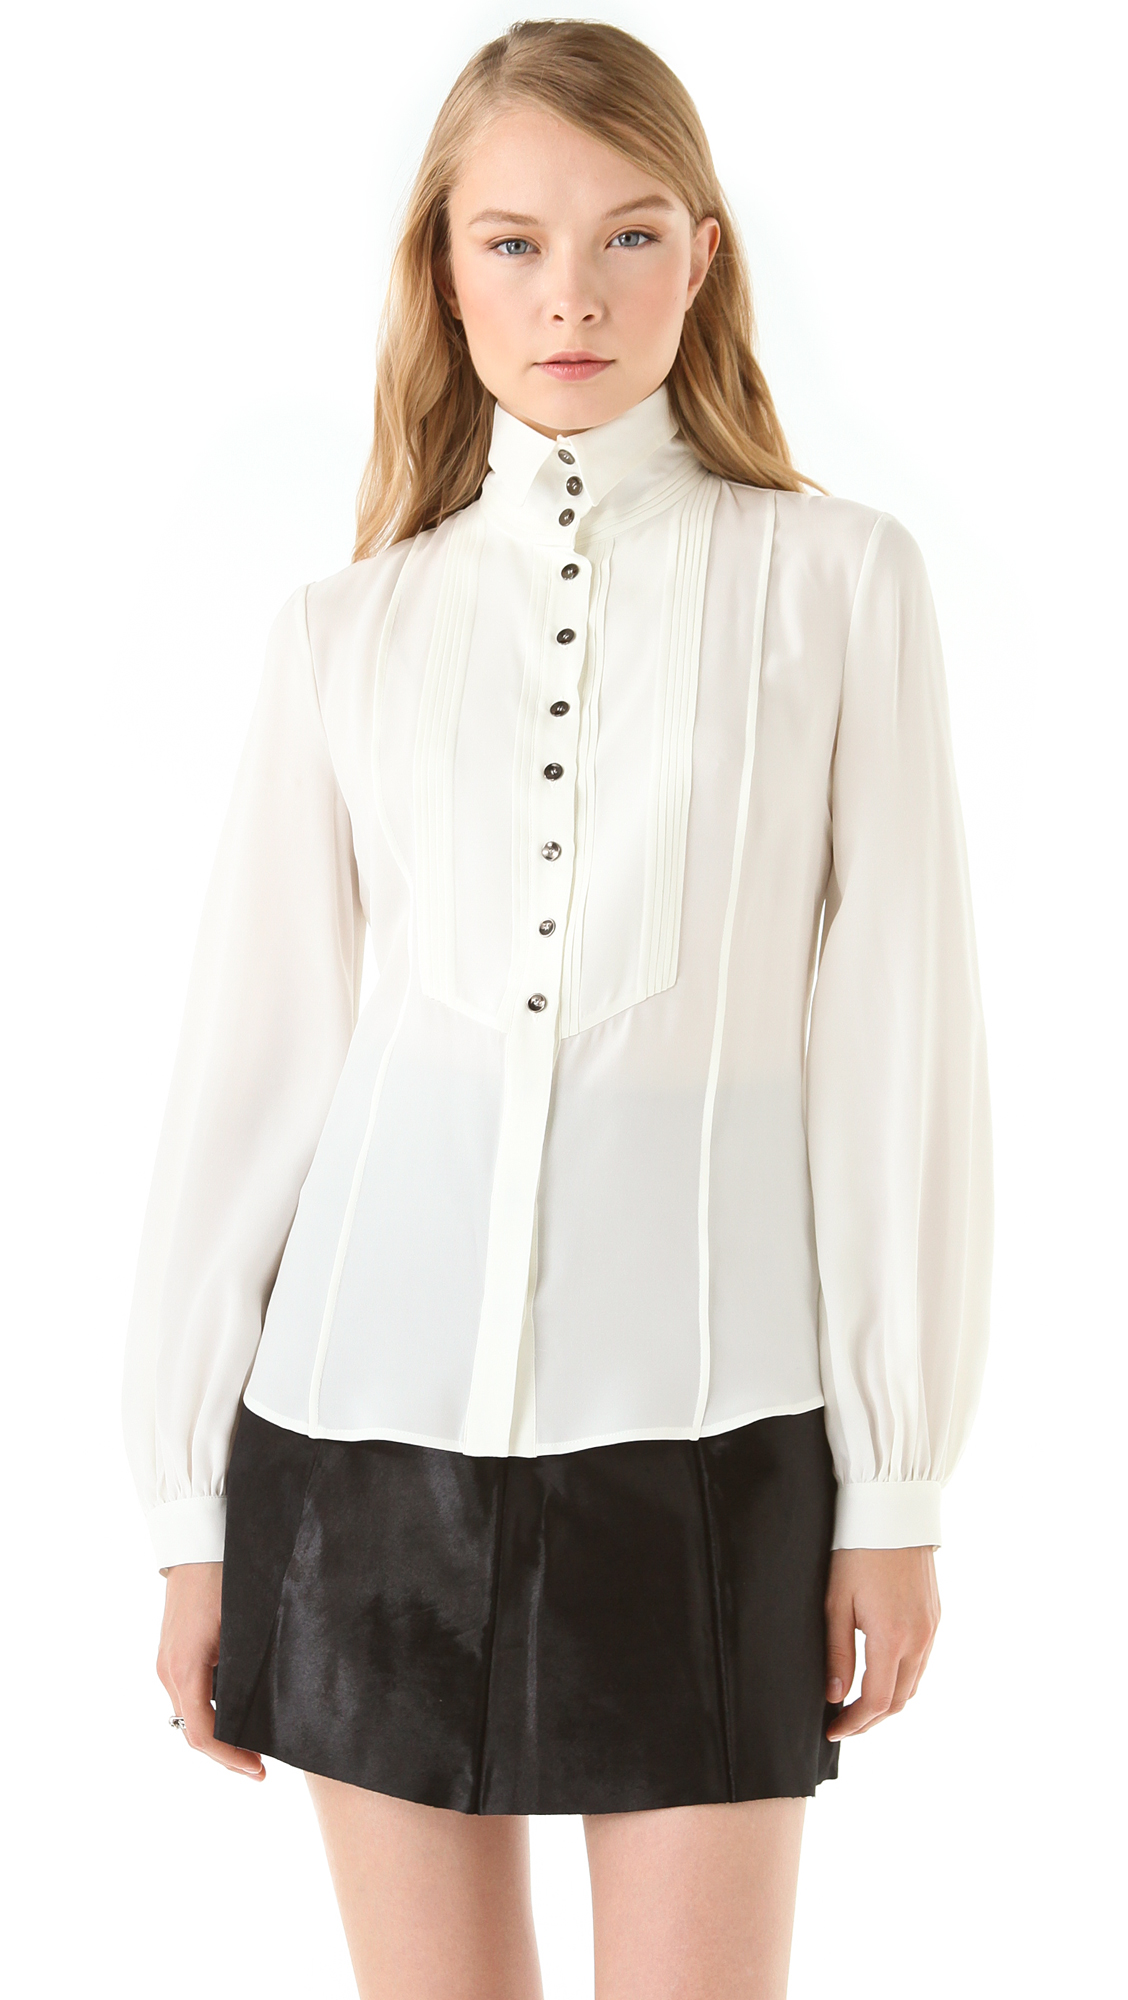 Find great deals on eBay for high collar blouse. Shop with confidence.